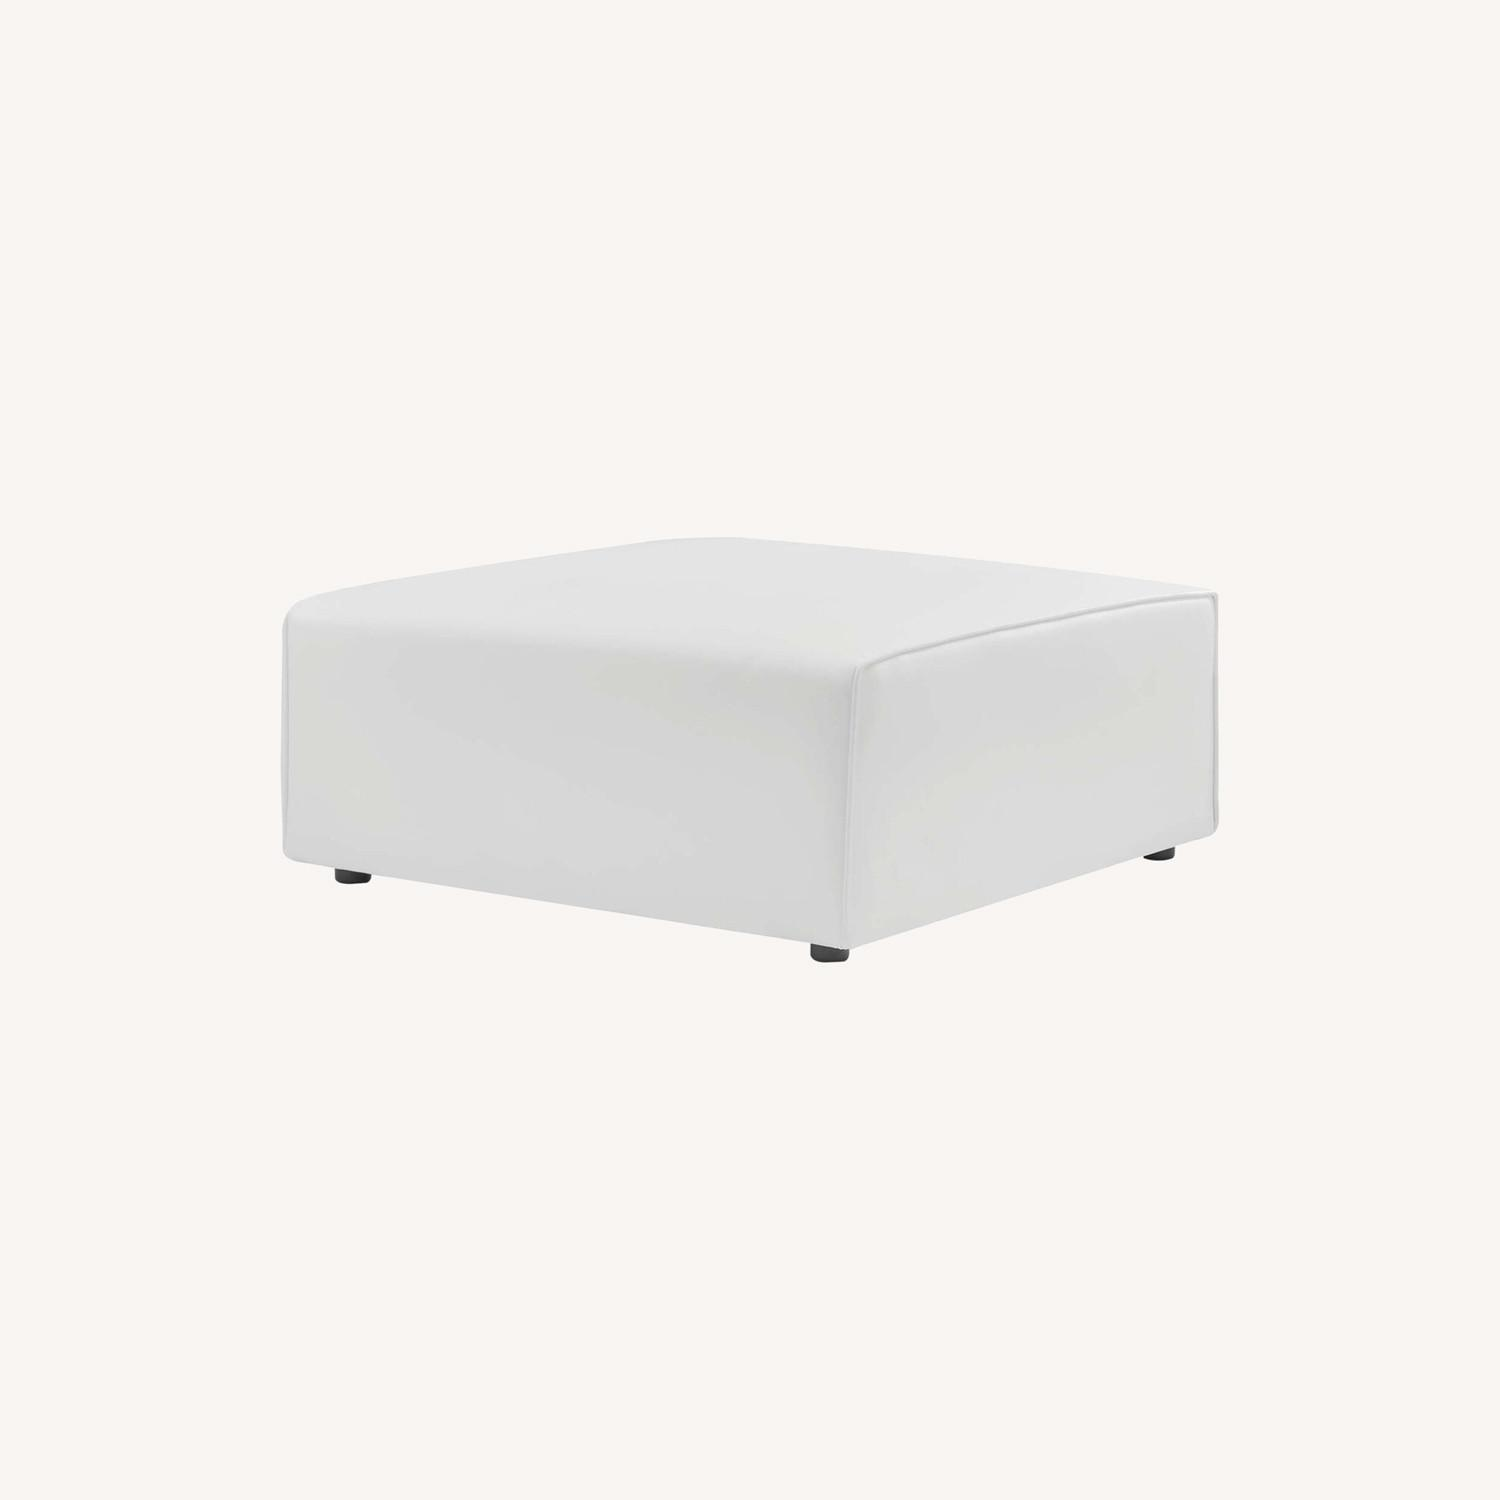 Ottoman In White Vegan Leather Upholstery - image-7